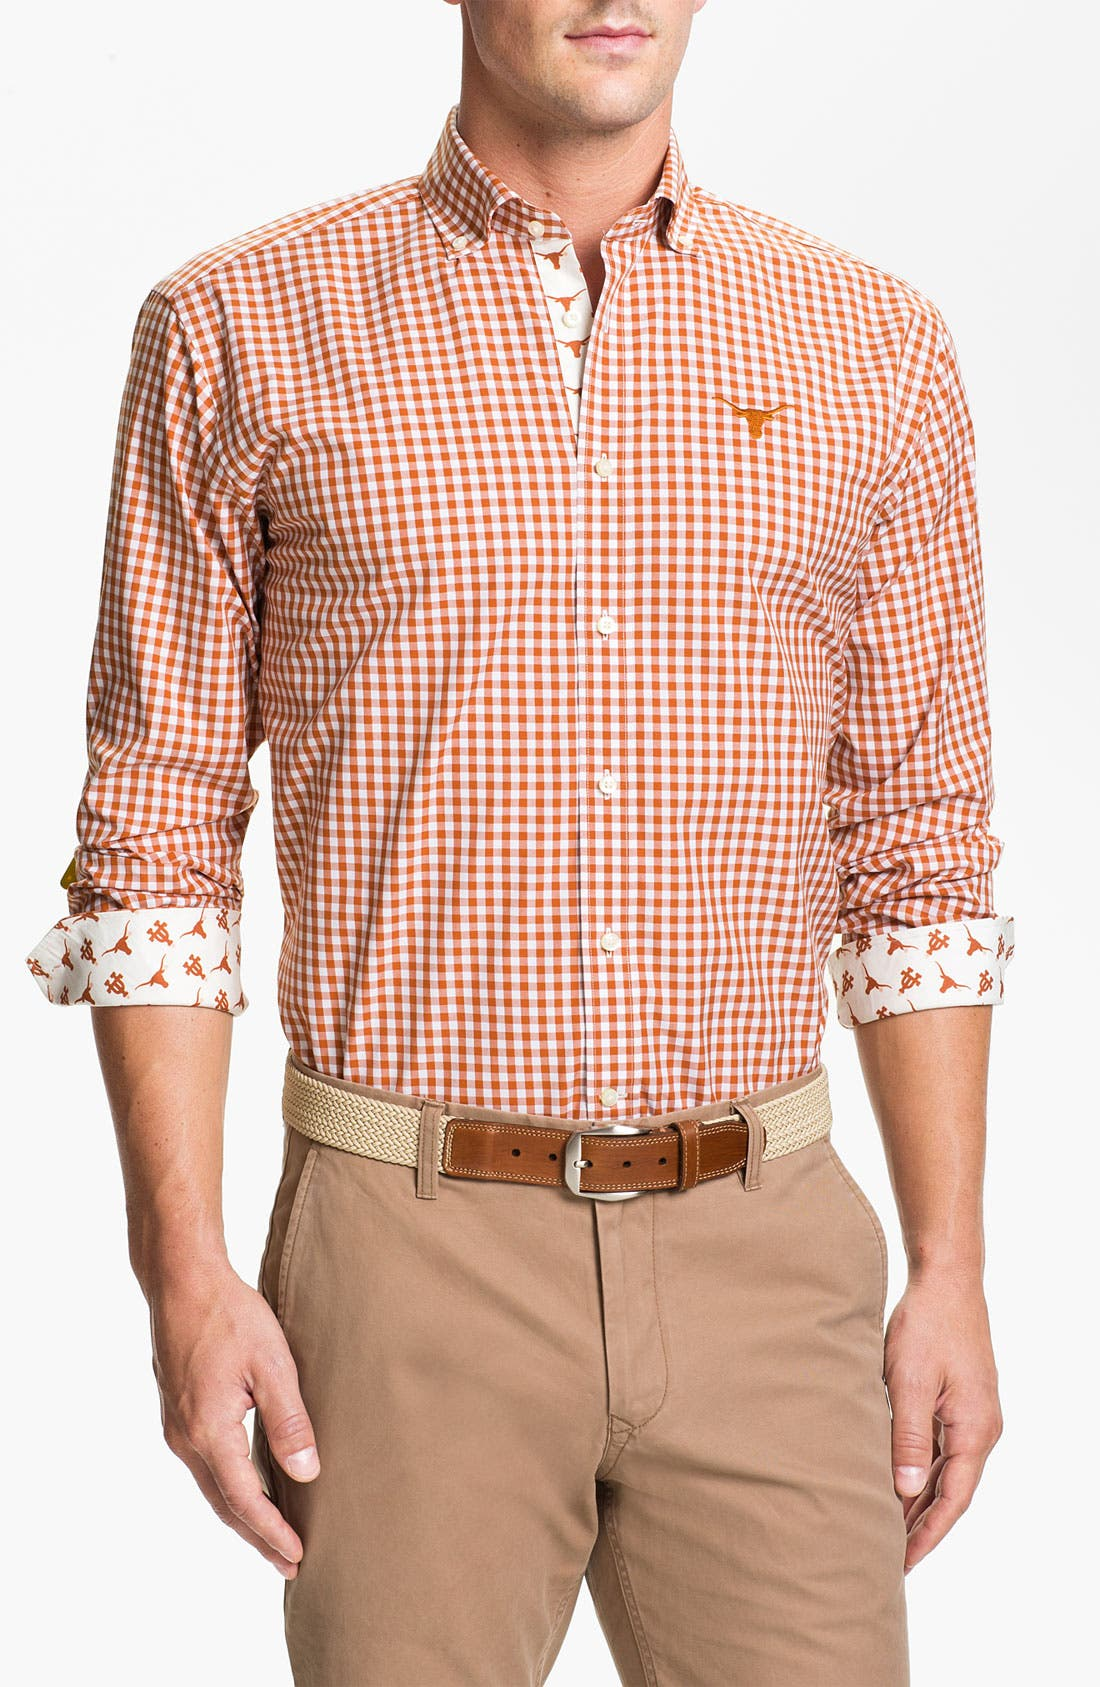 Alternate Image 1 Selected - Thomas Dean 'University of Texas' Gingham Sport Shirt